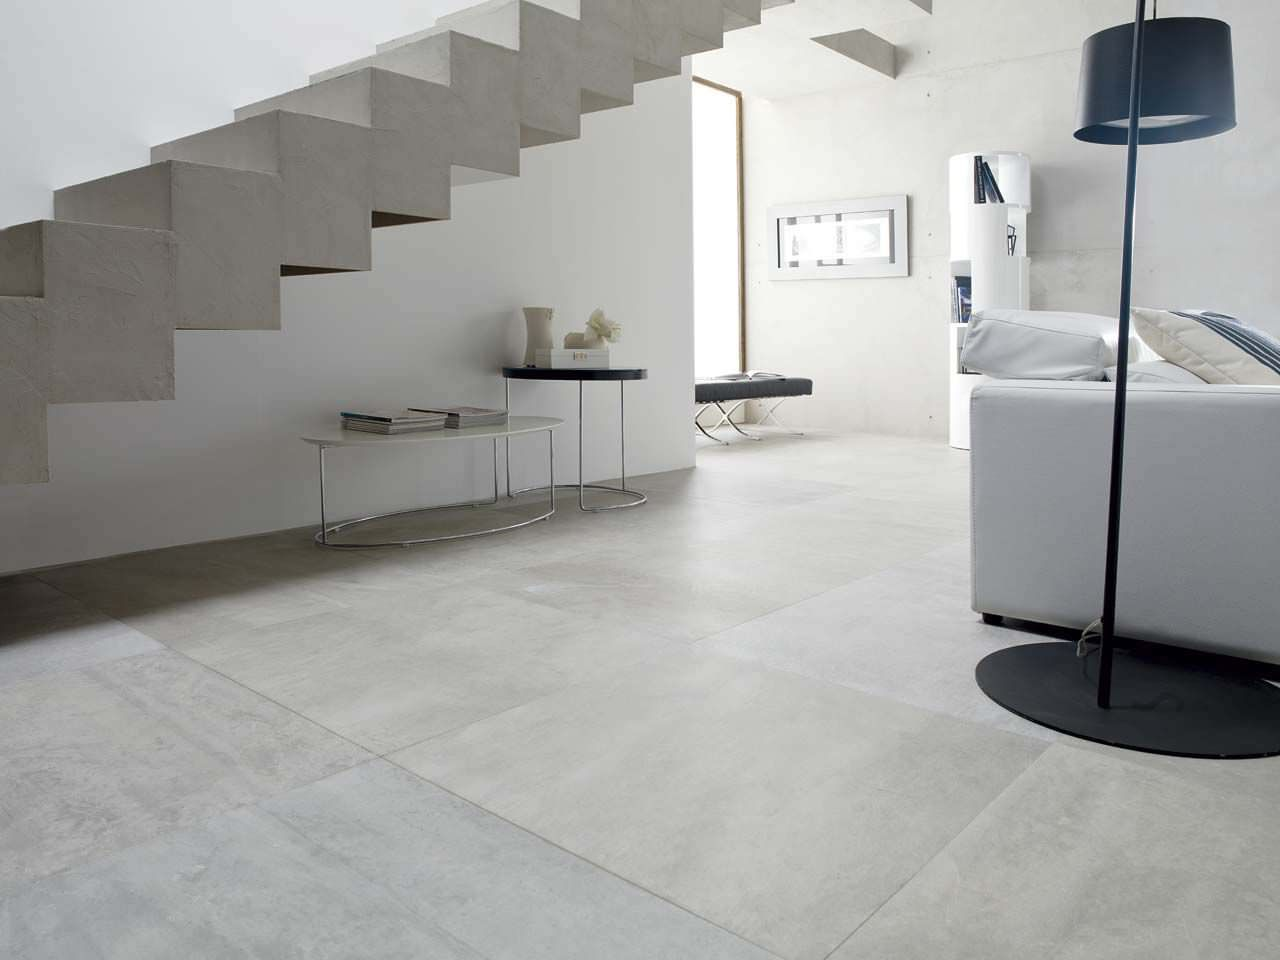 Carrelage de sol en gr s c rame poli aspect pierre for Porcelanosa catalogue carrelage